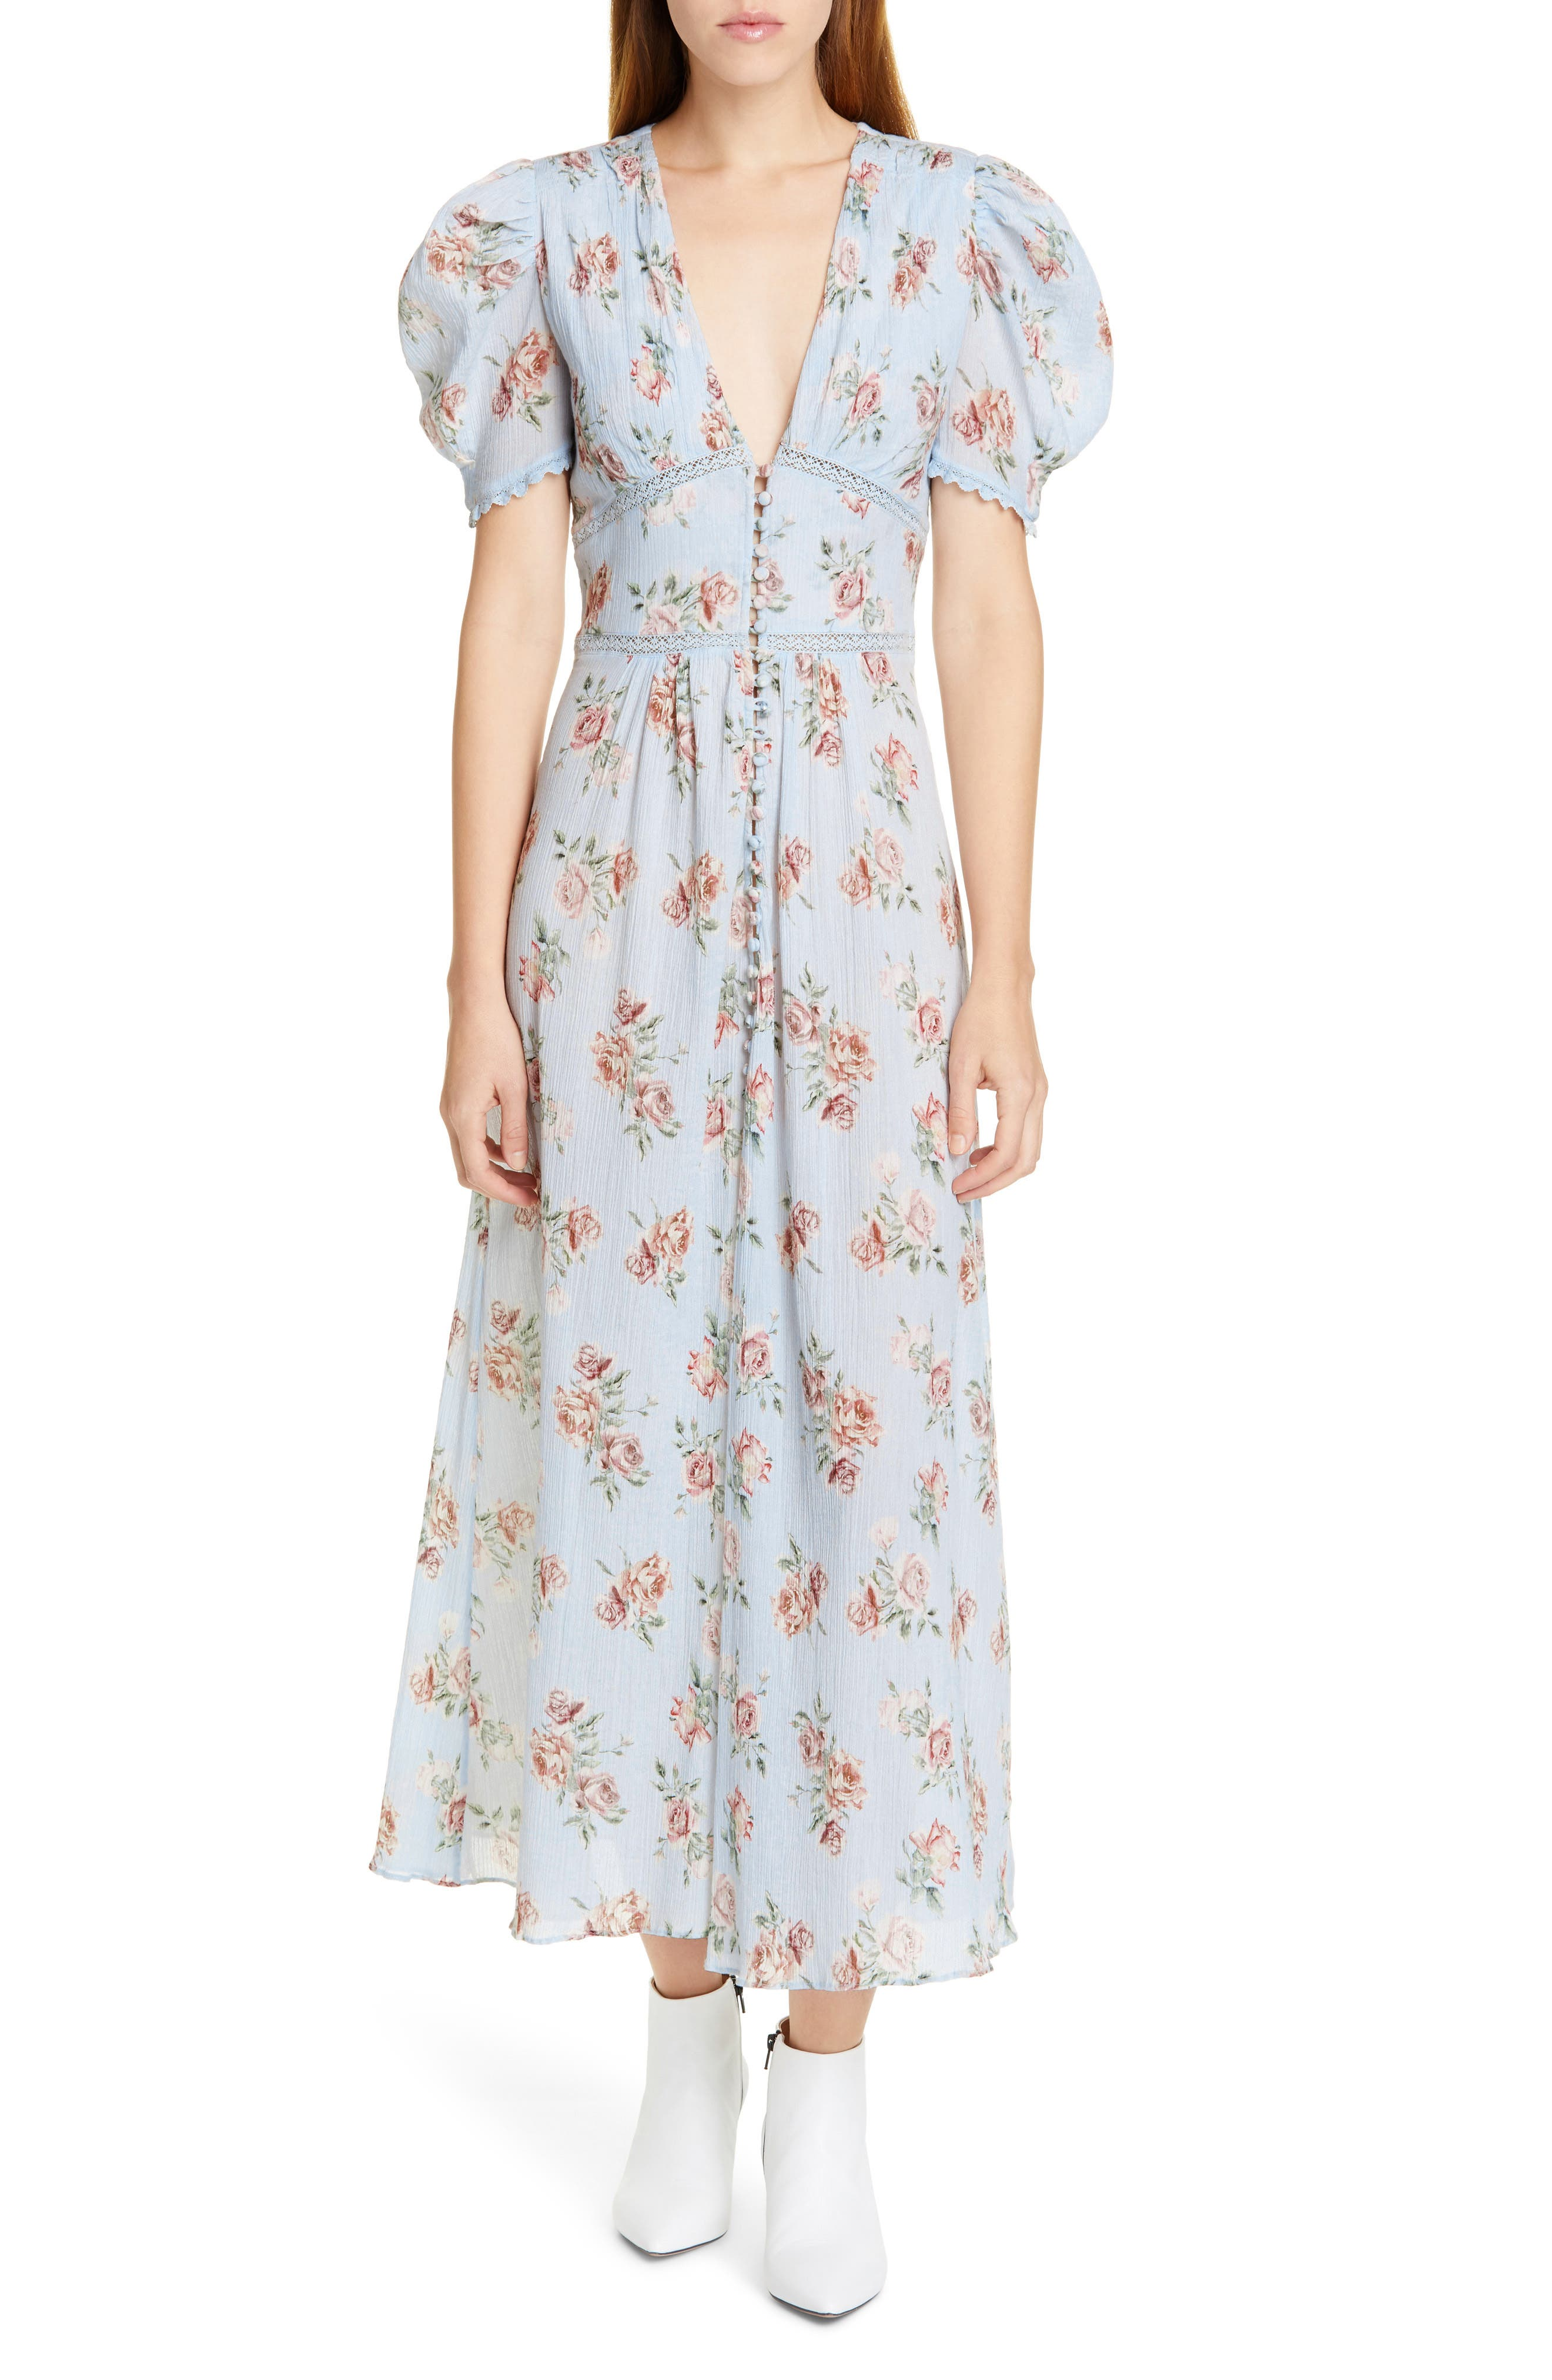 Loveshackfancy Stacy Floral Lace Inset Cotton Maxi Dress, Blue